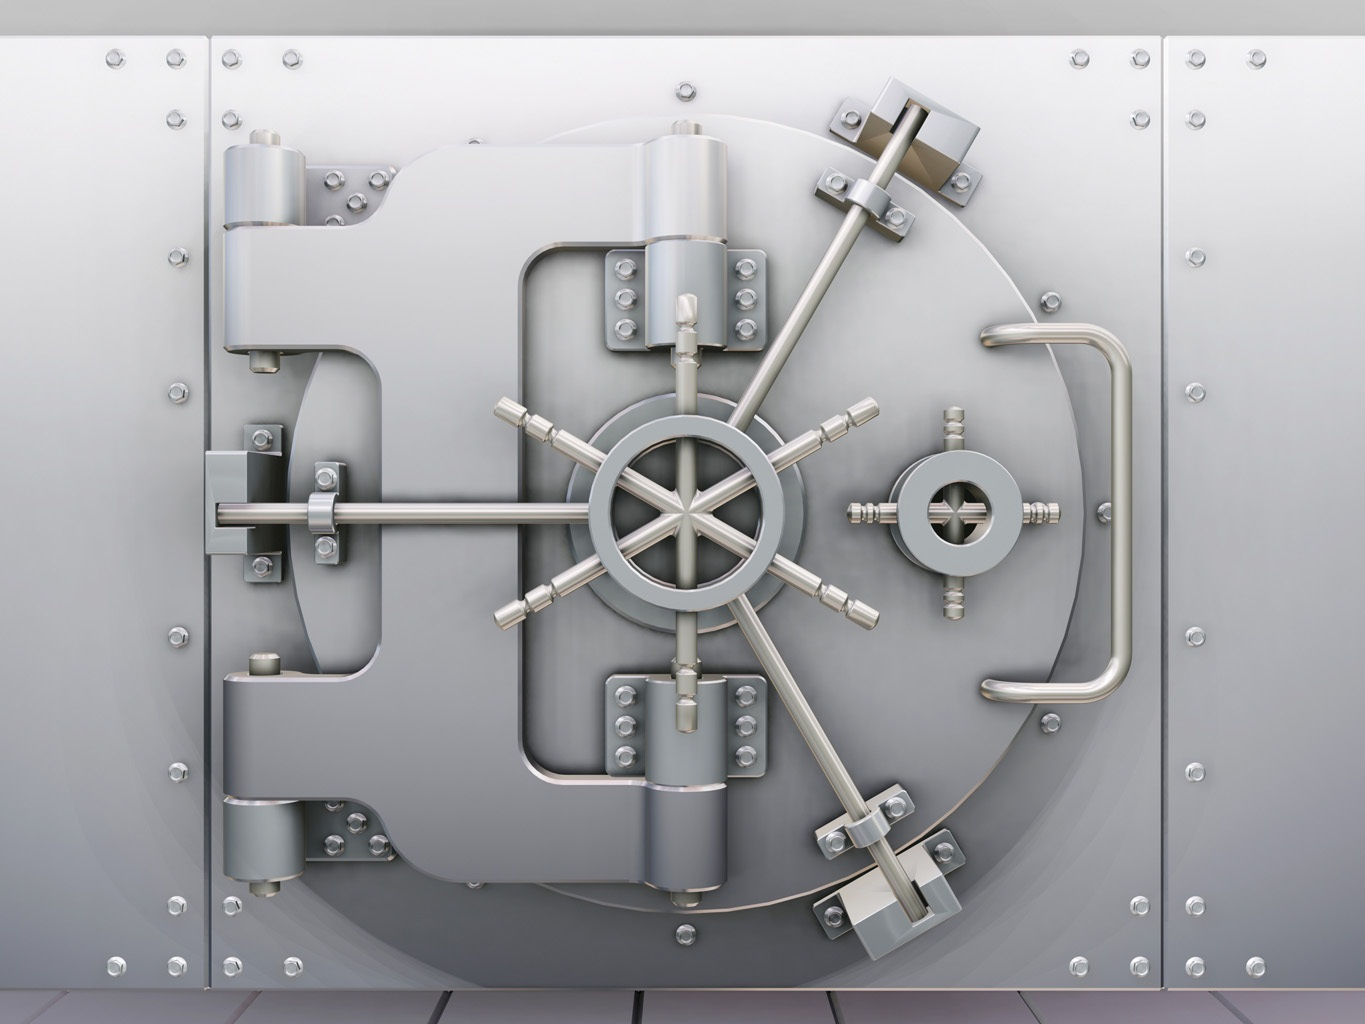 Maryland Estate Planning Secure Document Vault